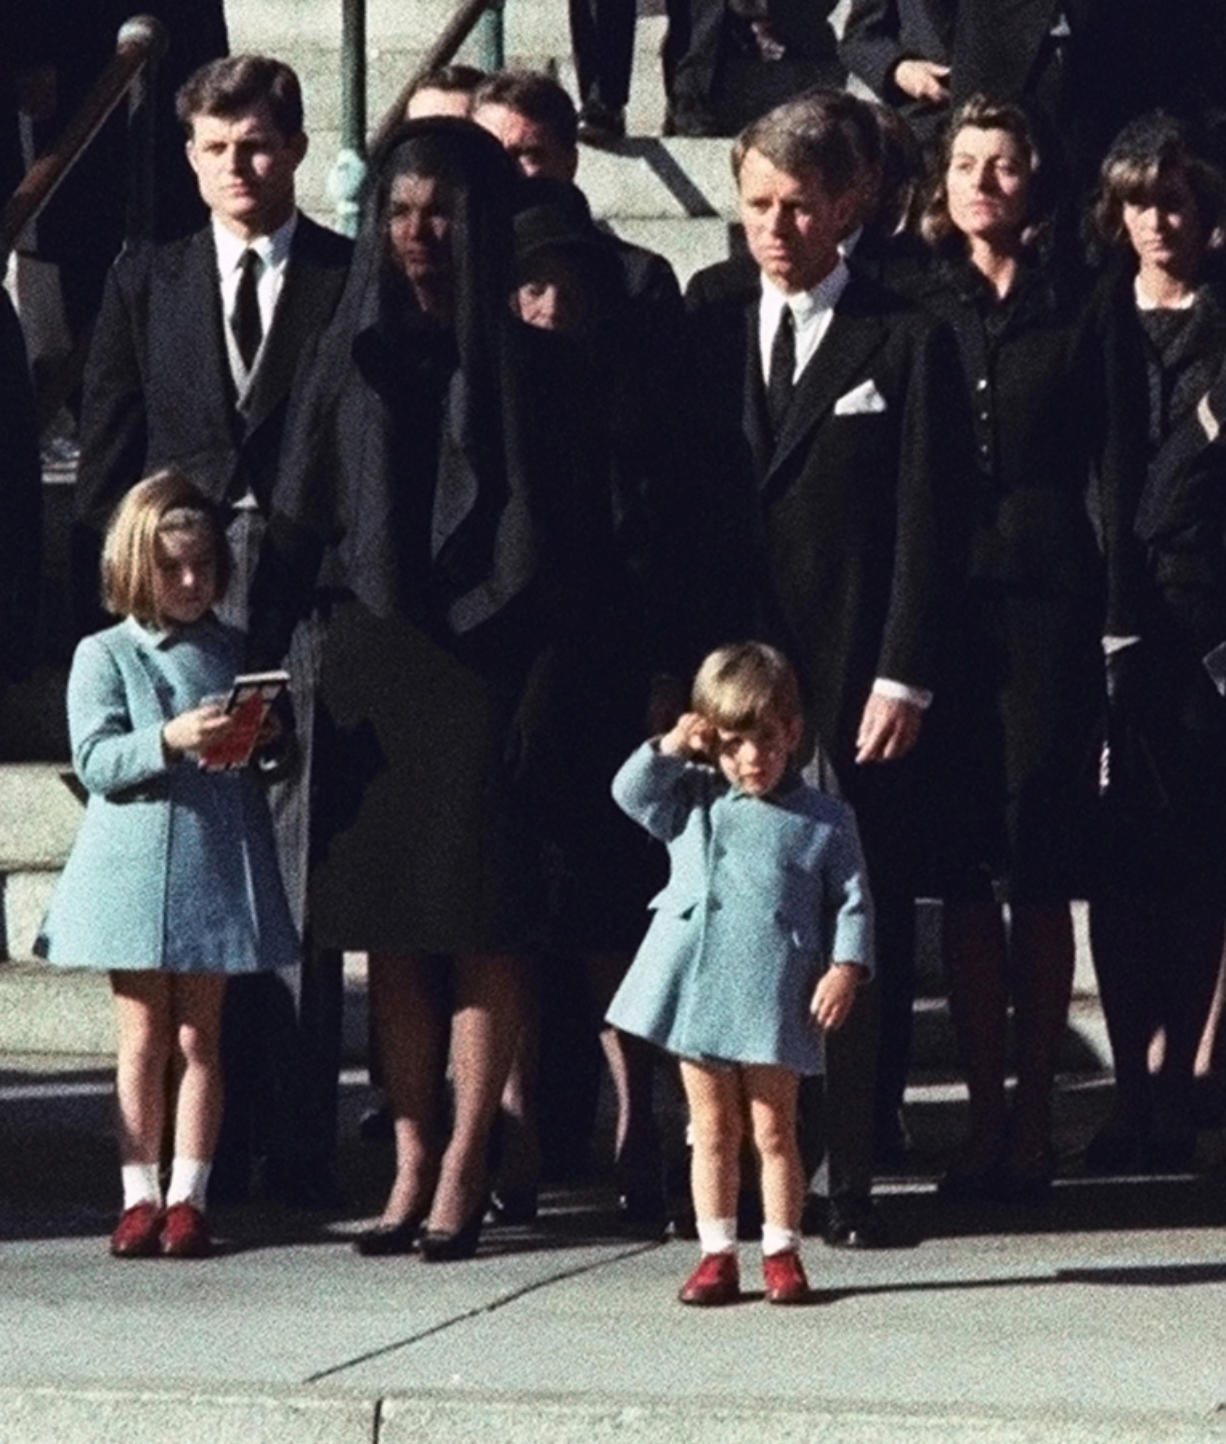 John F. Kennedy Jr., 3, salutes his father's casket Nov. 25, 1963 in Washington, three days after the president was assassinated in Dallas. Widow Jacqueline Kennedy, center, and daughter Caroline Kennedy are accompanied by the late president's brothers Sen. Edward Kennedy, left, and Attorney General Robert Kennedy.